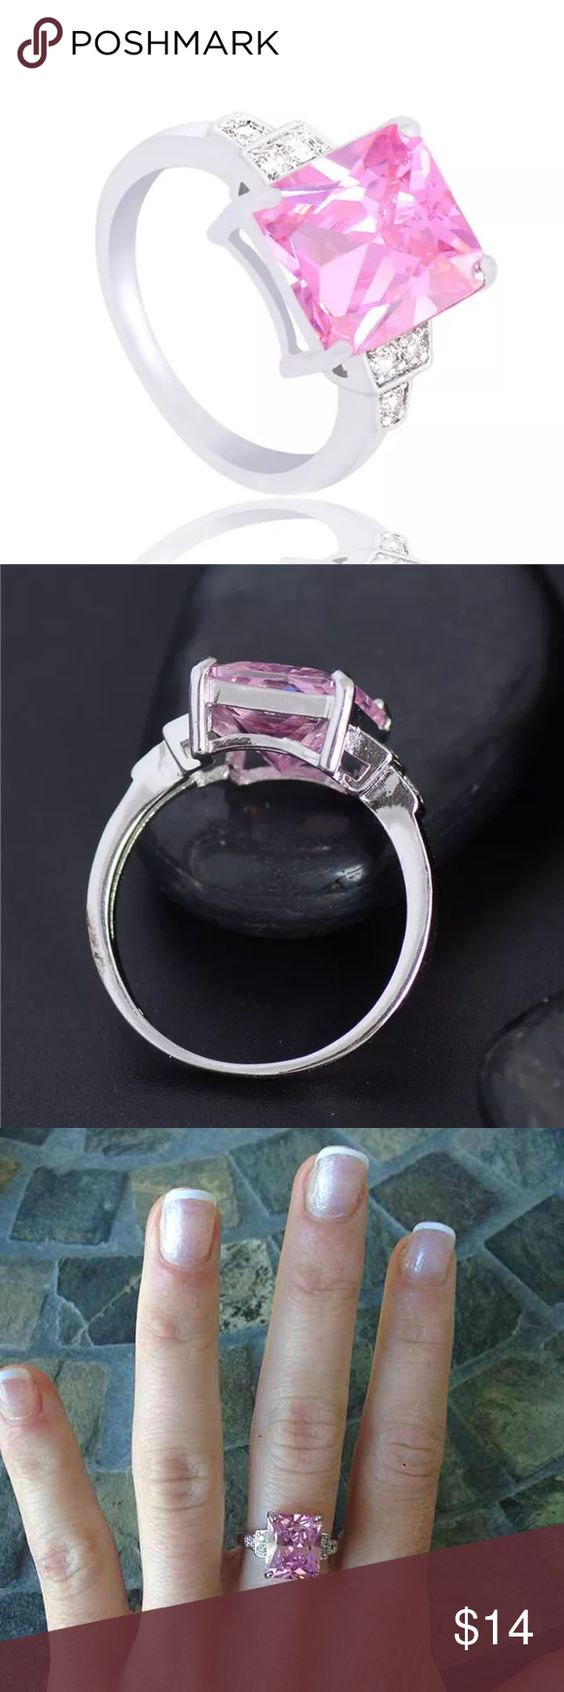 Pink Emerald Cut Silver Engagement Ring Huge Emerald cut pink center stone Silver plated  FIRM PRICE/NO TRADES❗️(cheaper on ♏️) Jewelry Rings